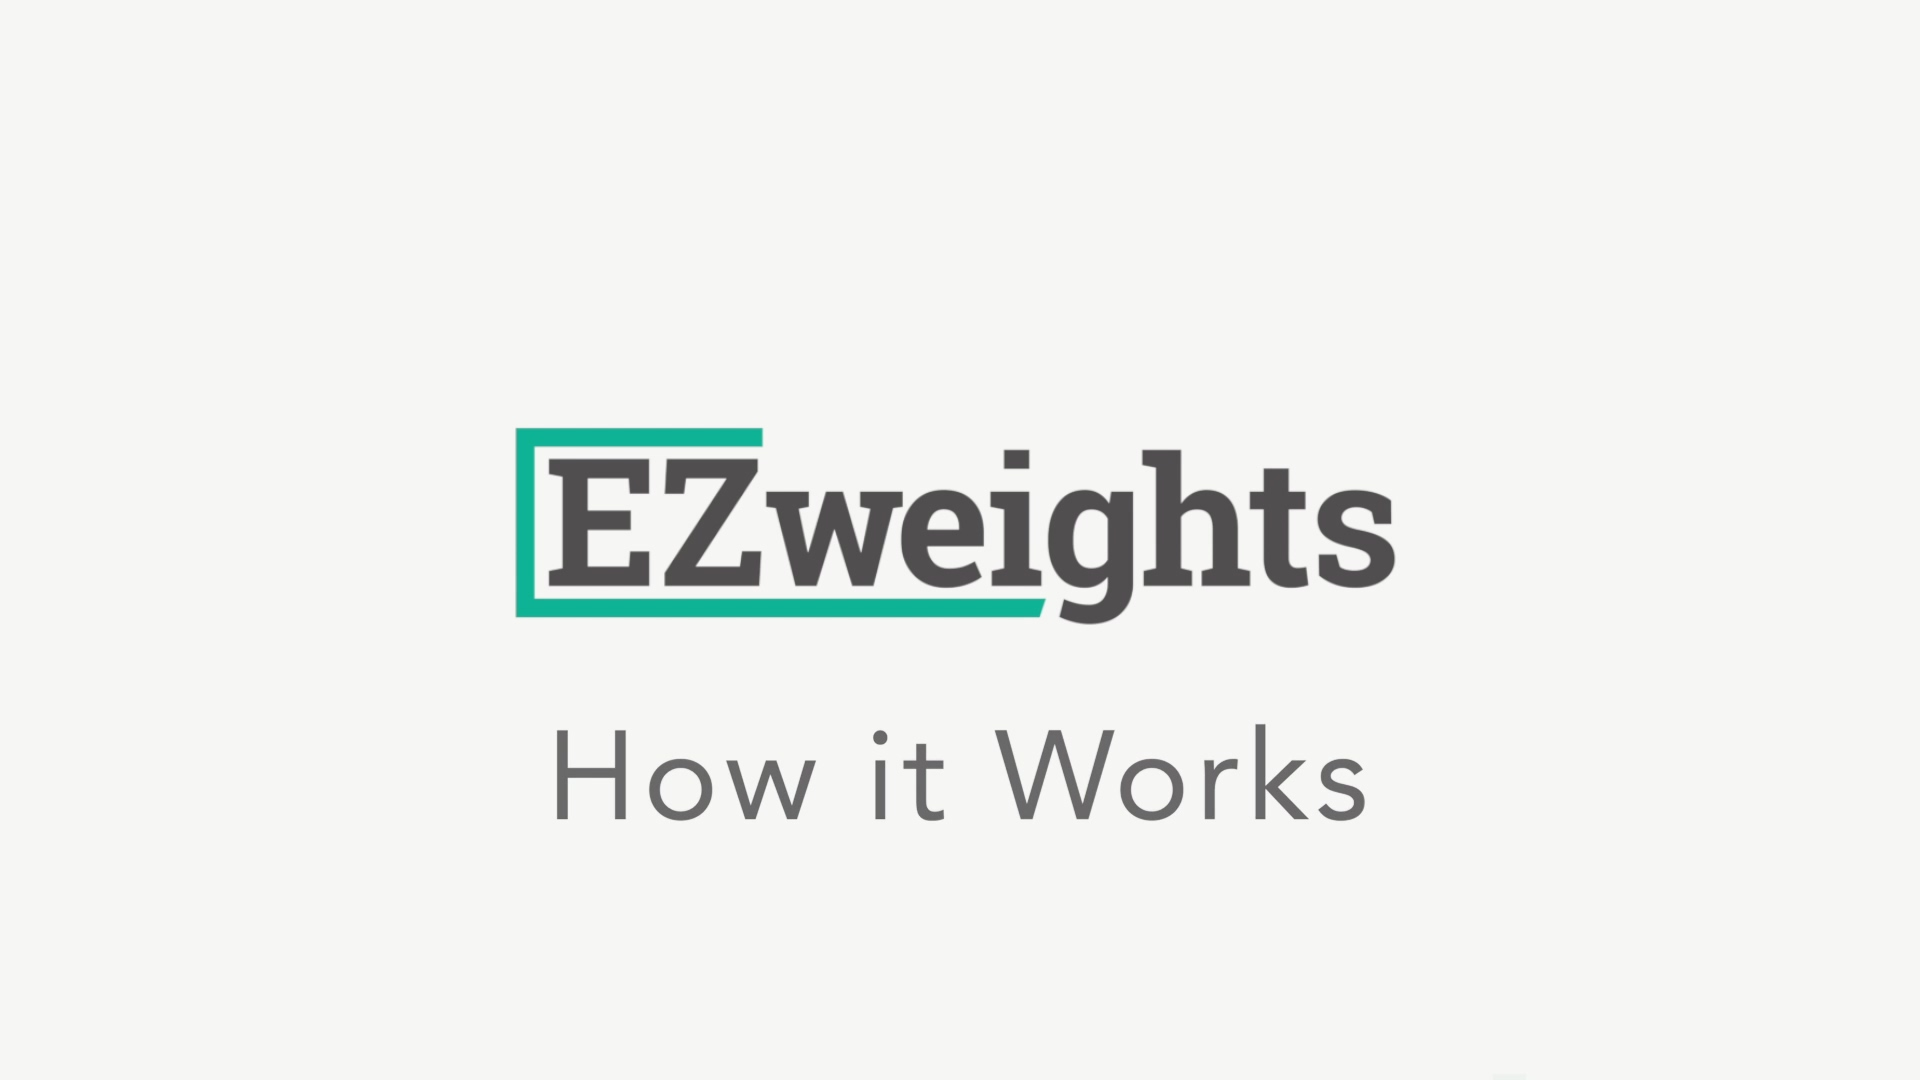 EZweights - How it Works